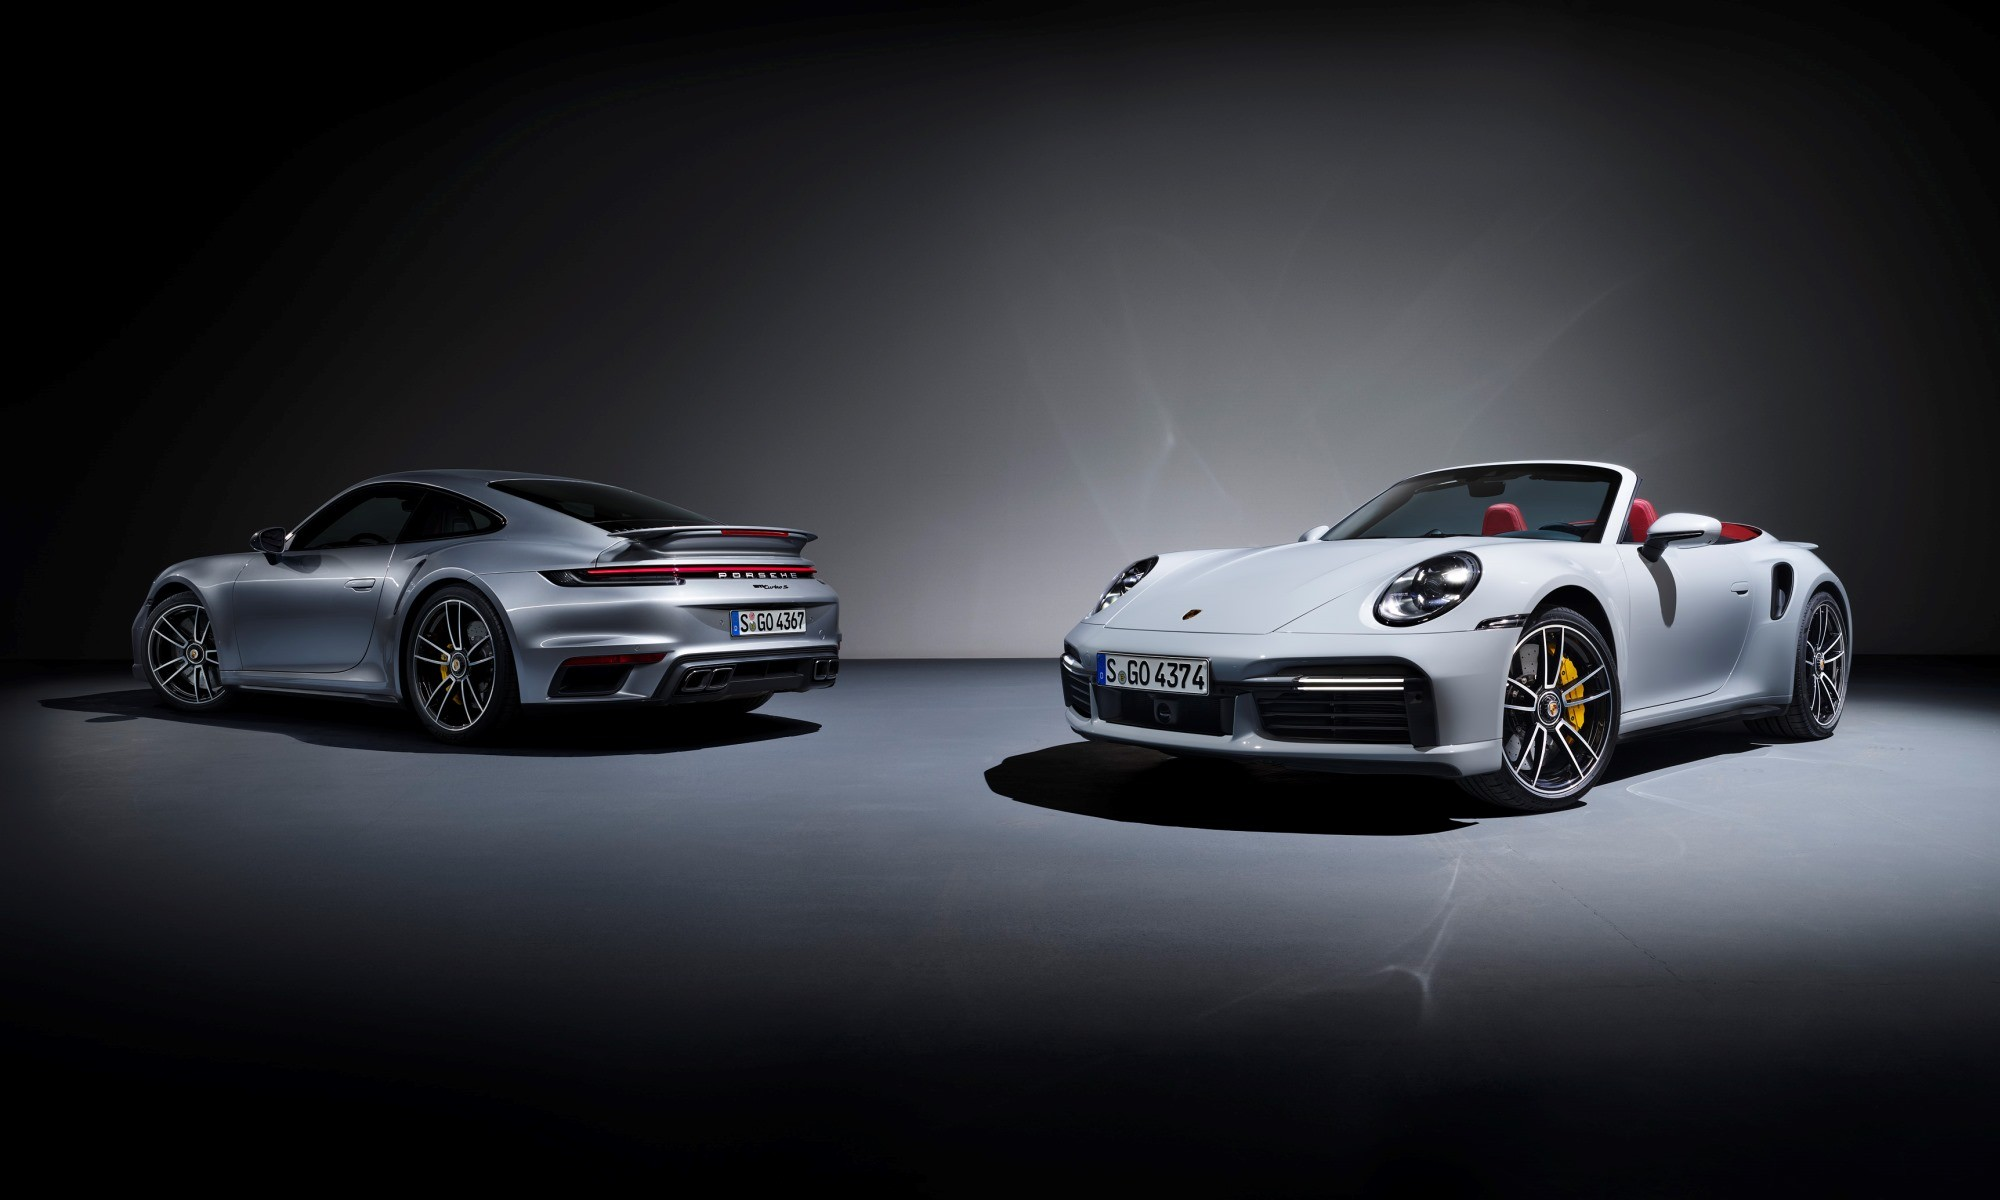 New Porsche 911 Turbo S coupe and Cabriolet